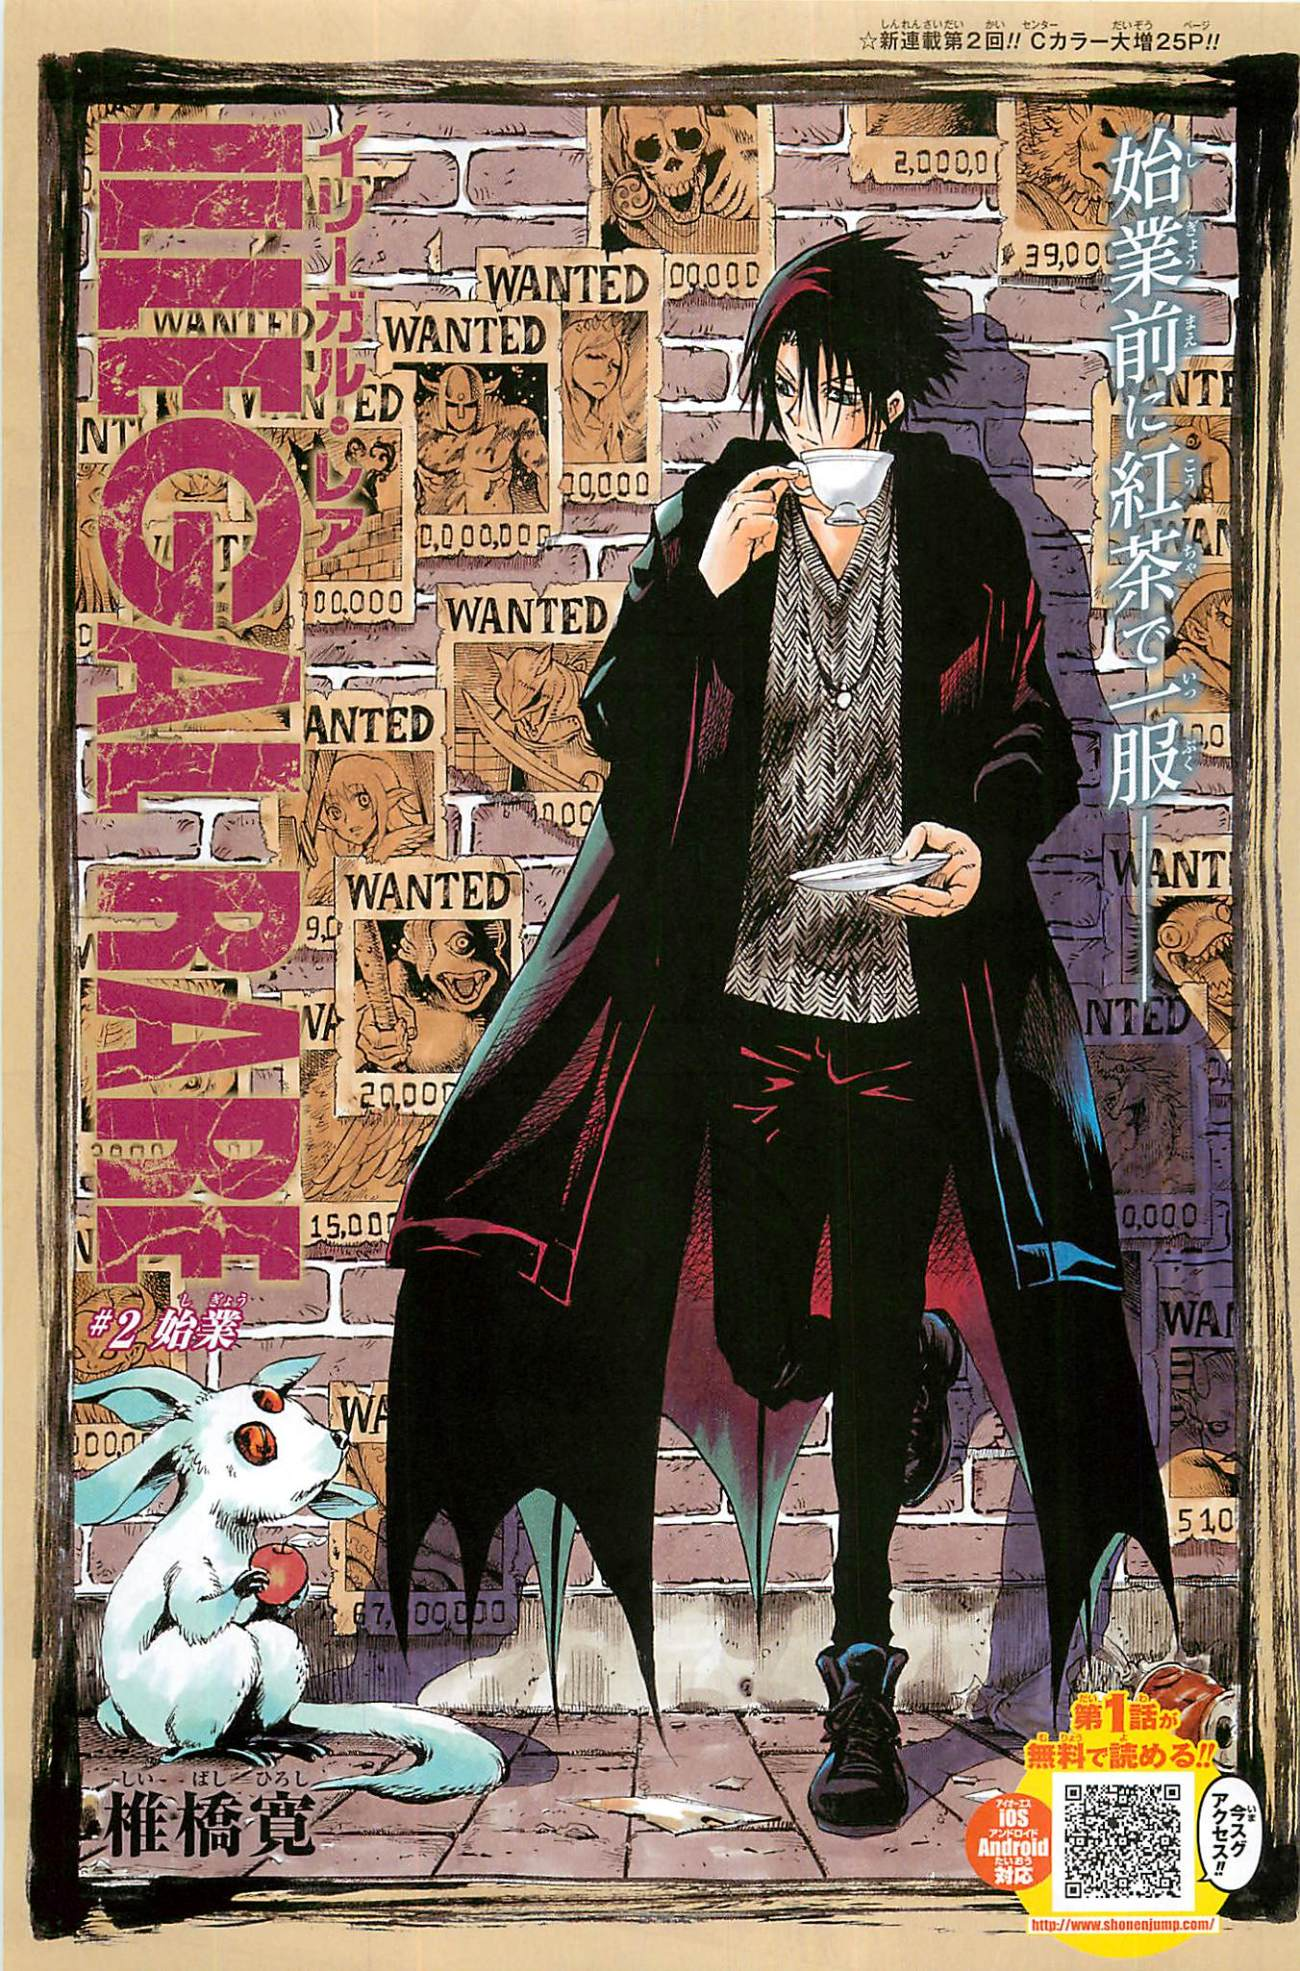 Weekly Shonen Jump 12 2014 Illegal Rare Page couleur